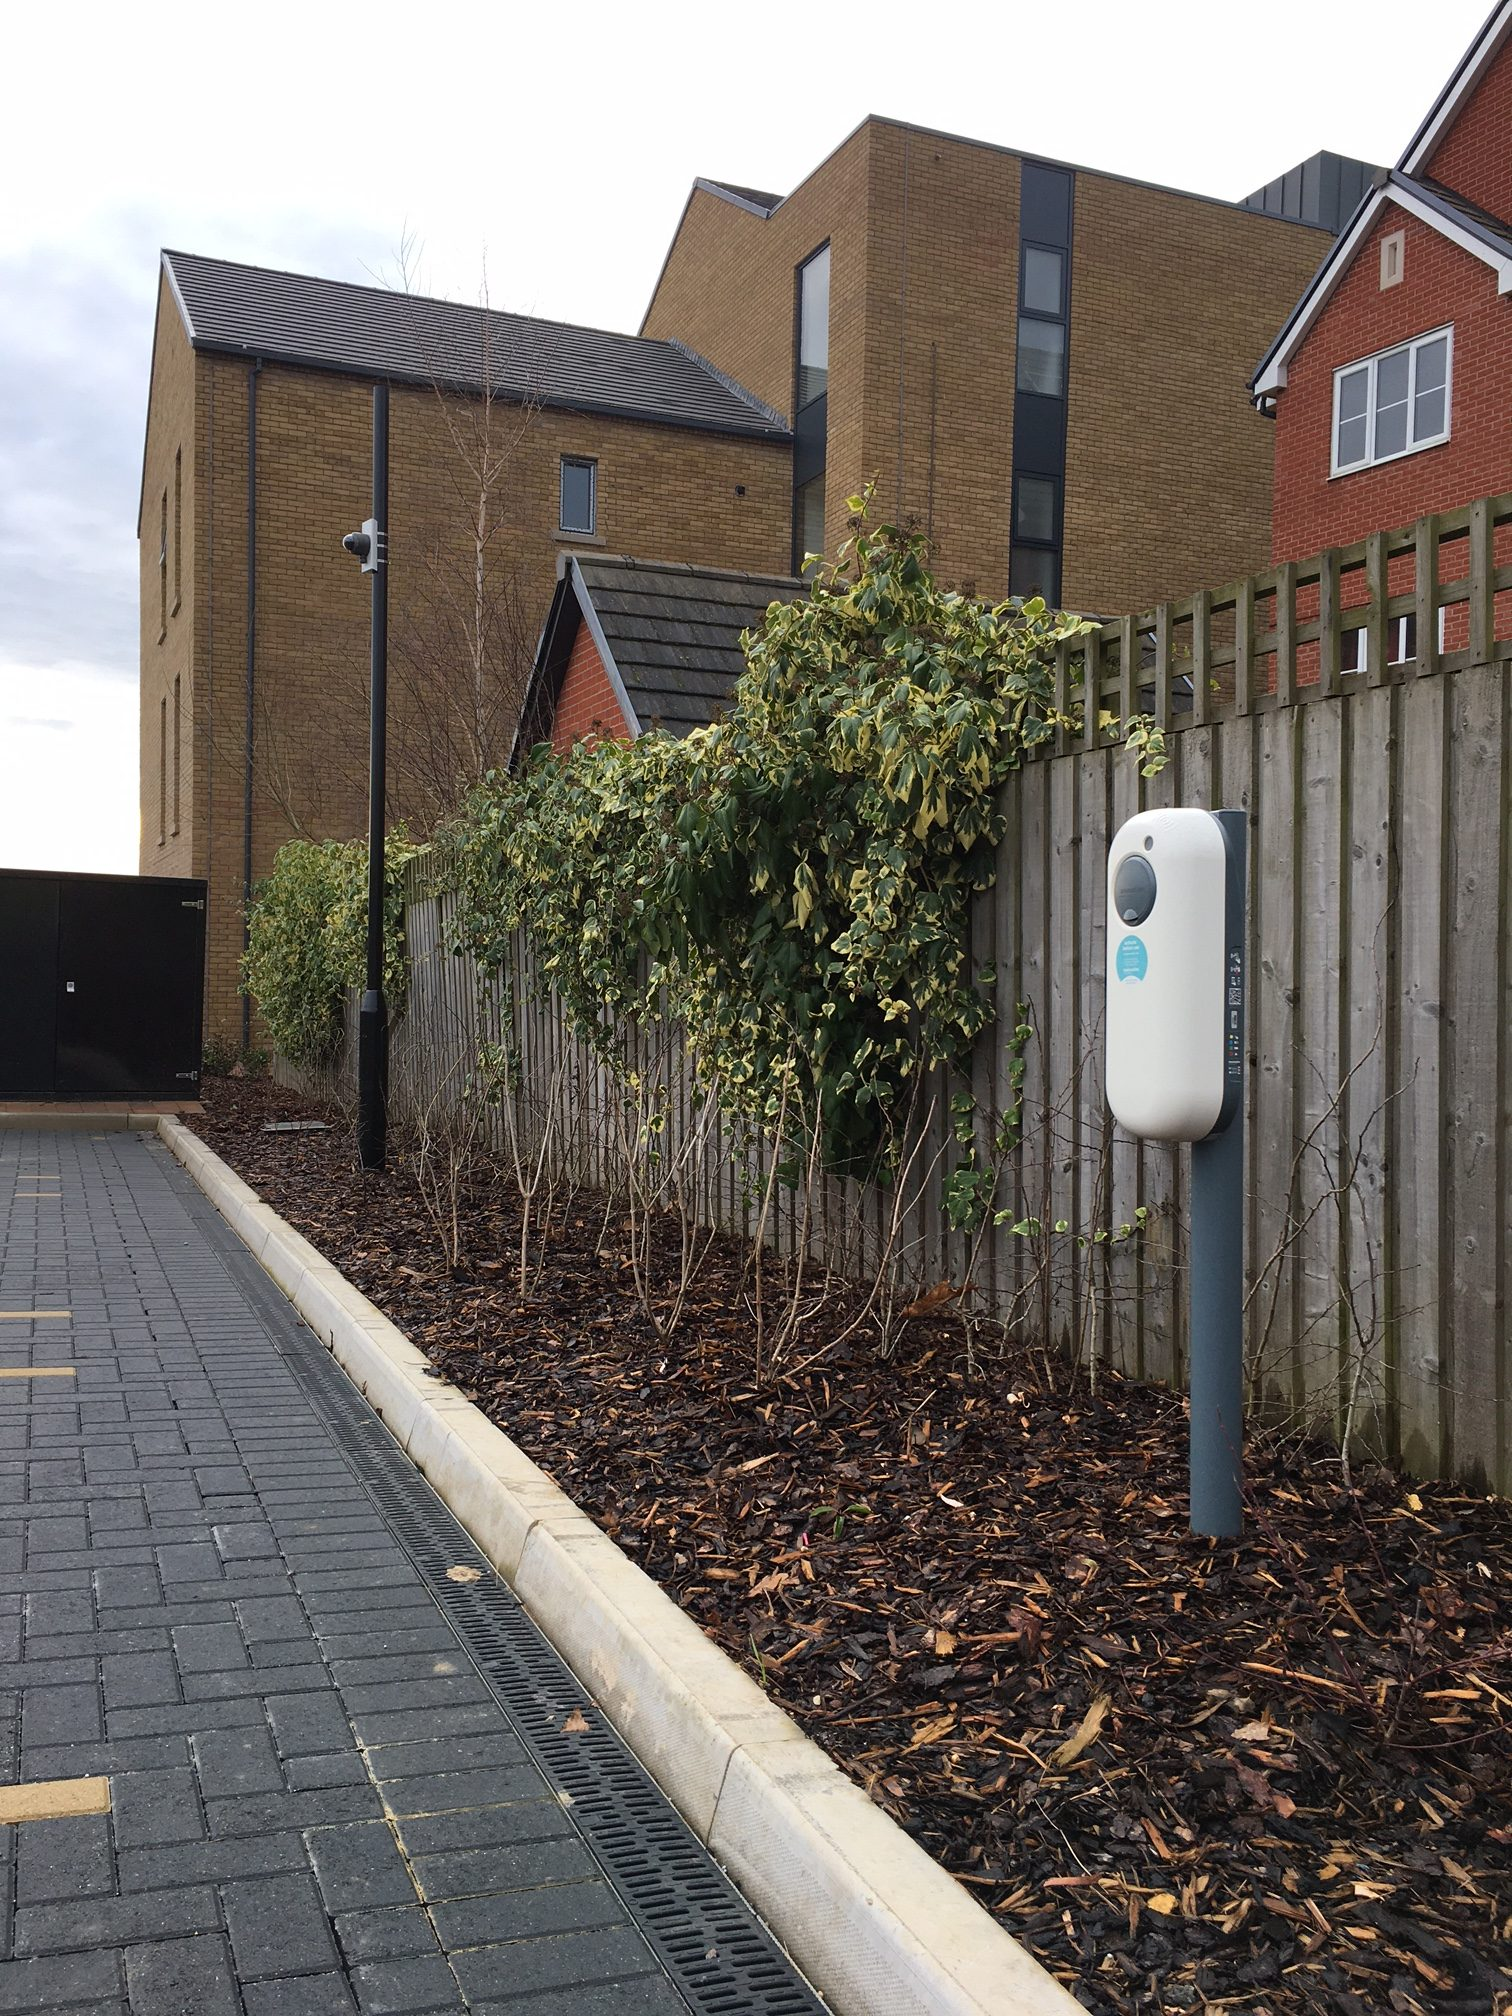 Electric Car Chargers UK, ECC UK, providing communal chargers for apartment blocks and residential developments